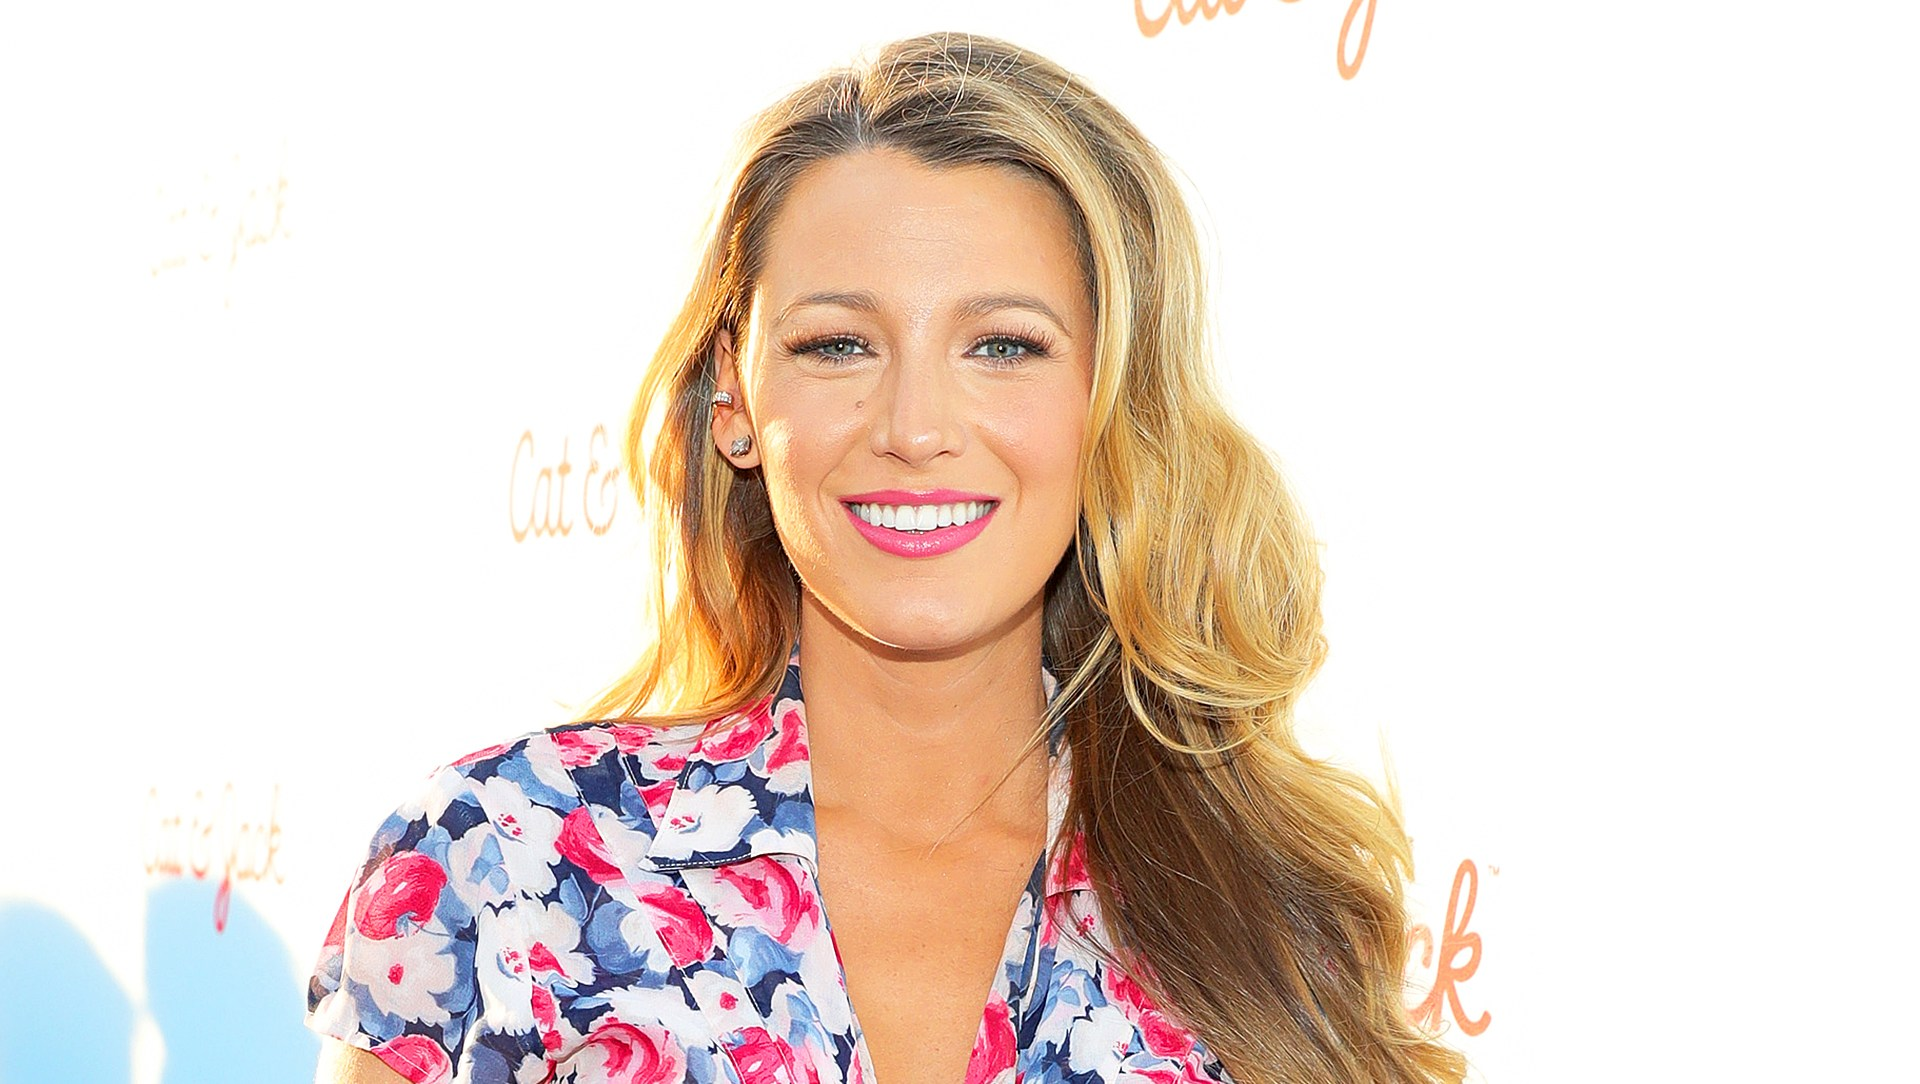 Blake Lively attends Target Cat & Jack 2016 Launch Celebration at Pier 6 at Brooklyn Bridge Park in New York City.